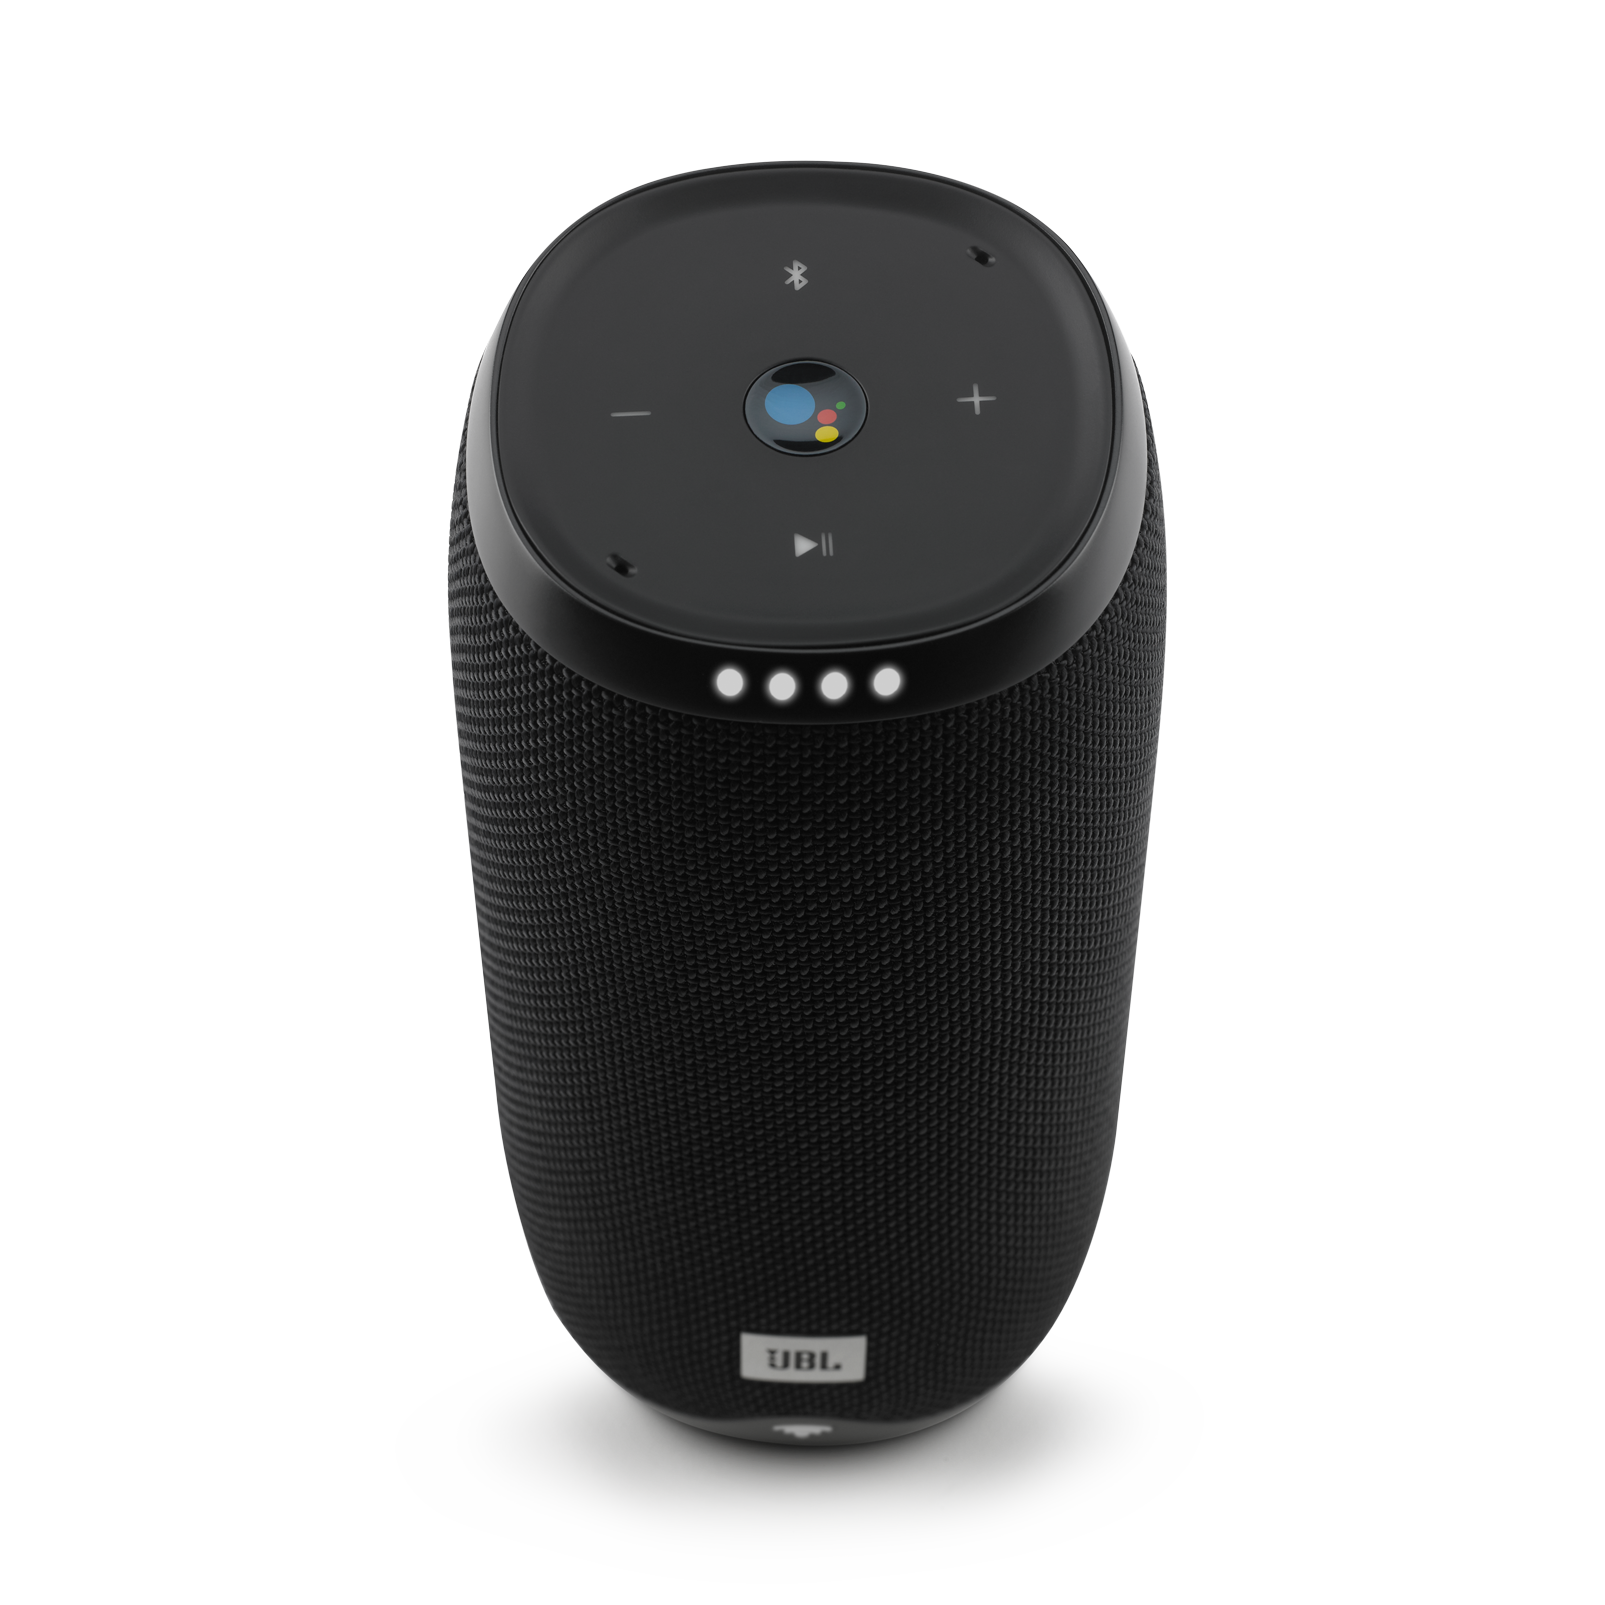 JBL Link 20 - Black - Voice-activated portable speaker - Detailshot 1